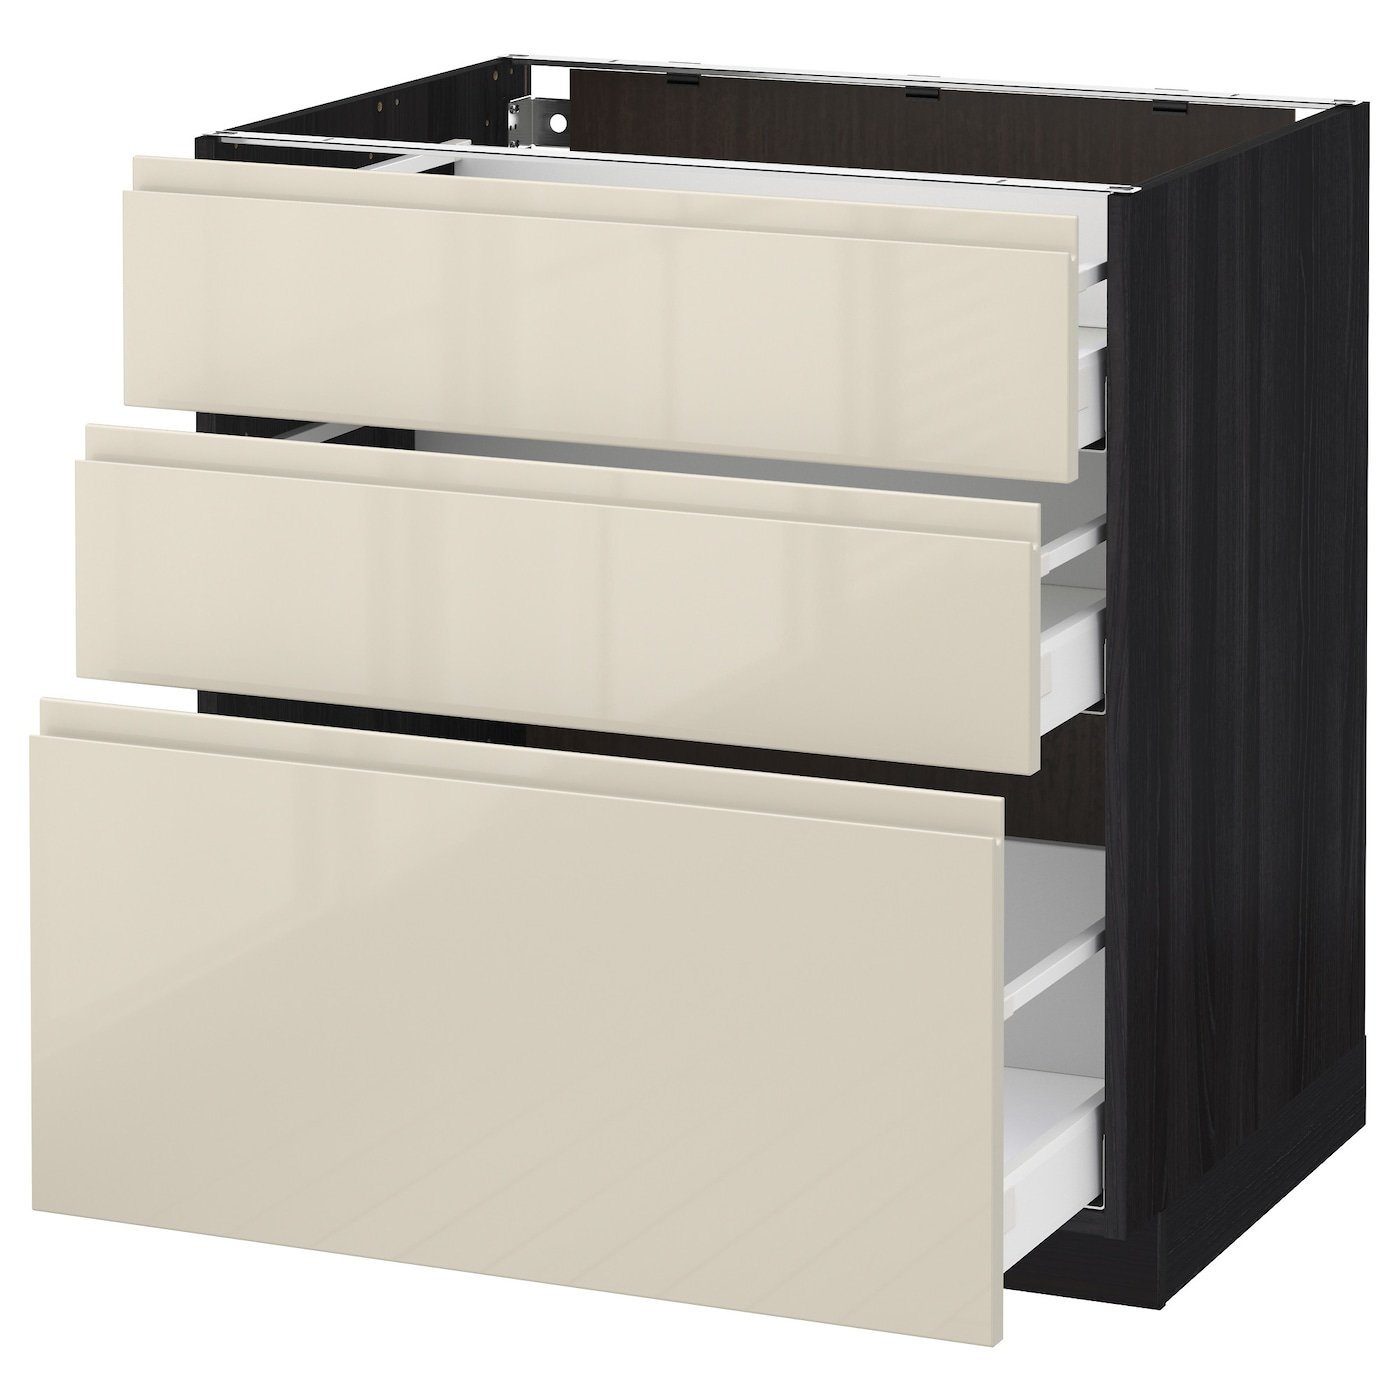 metod maximera base cabinet with 3 drawers black voxtorp high gloss light beige 80 x 60 cm ikea. Black Bedroom Furniture Sets. Home Design Ideas